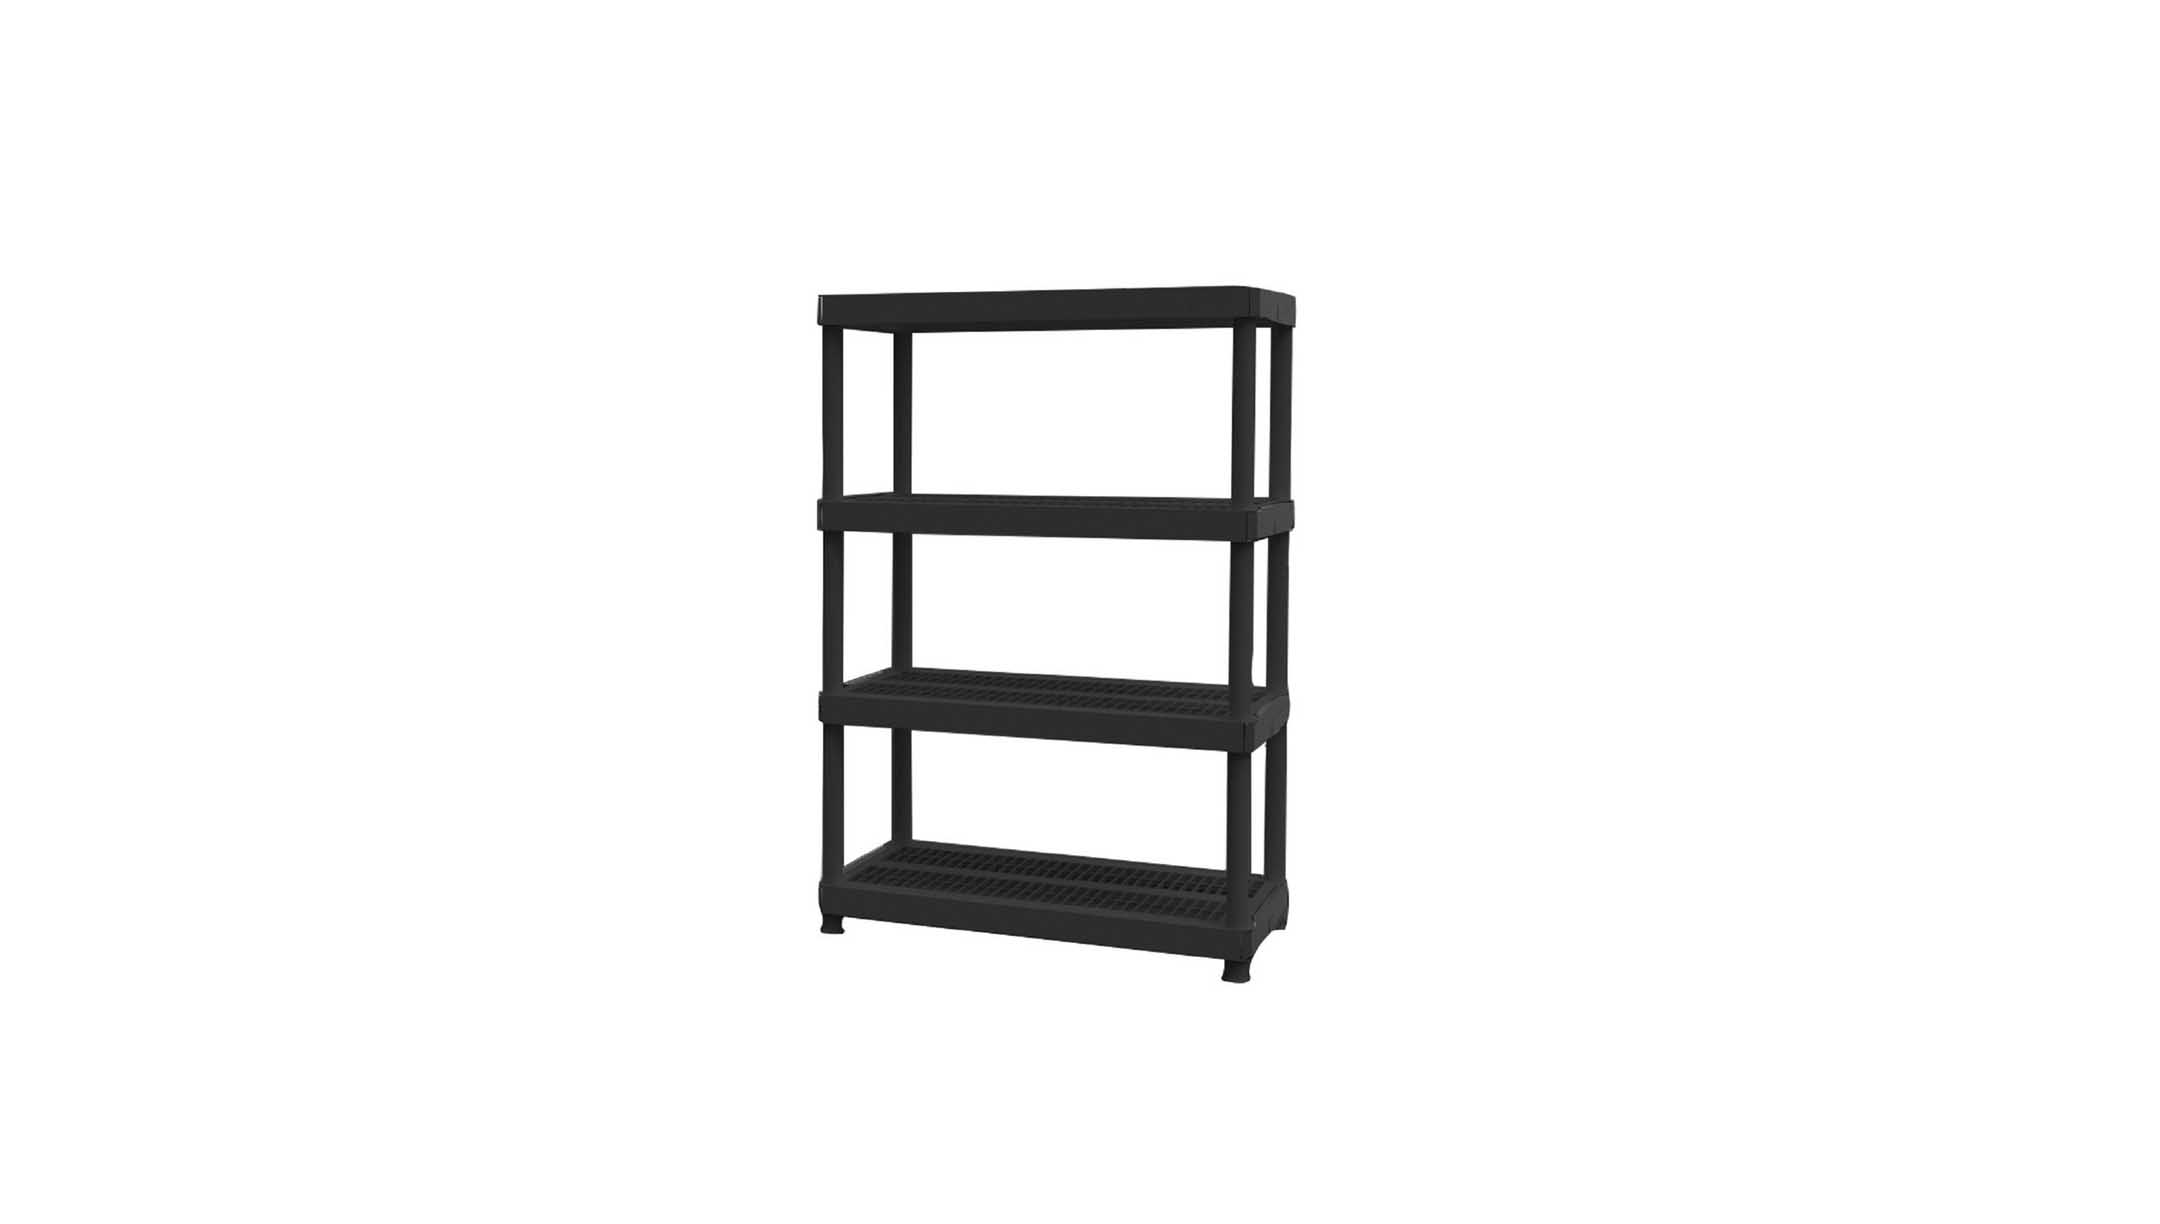 Superbe 4 Shelf Plastic Ventilated Storage Shelving Unit For $19.88 At The Home  Depot.